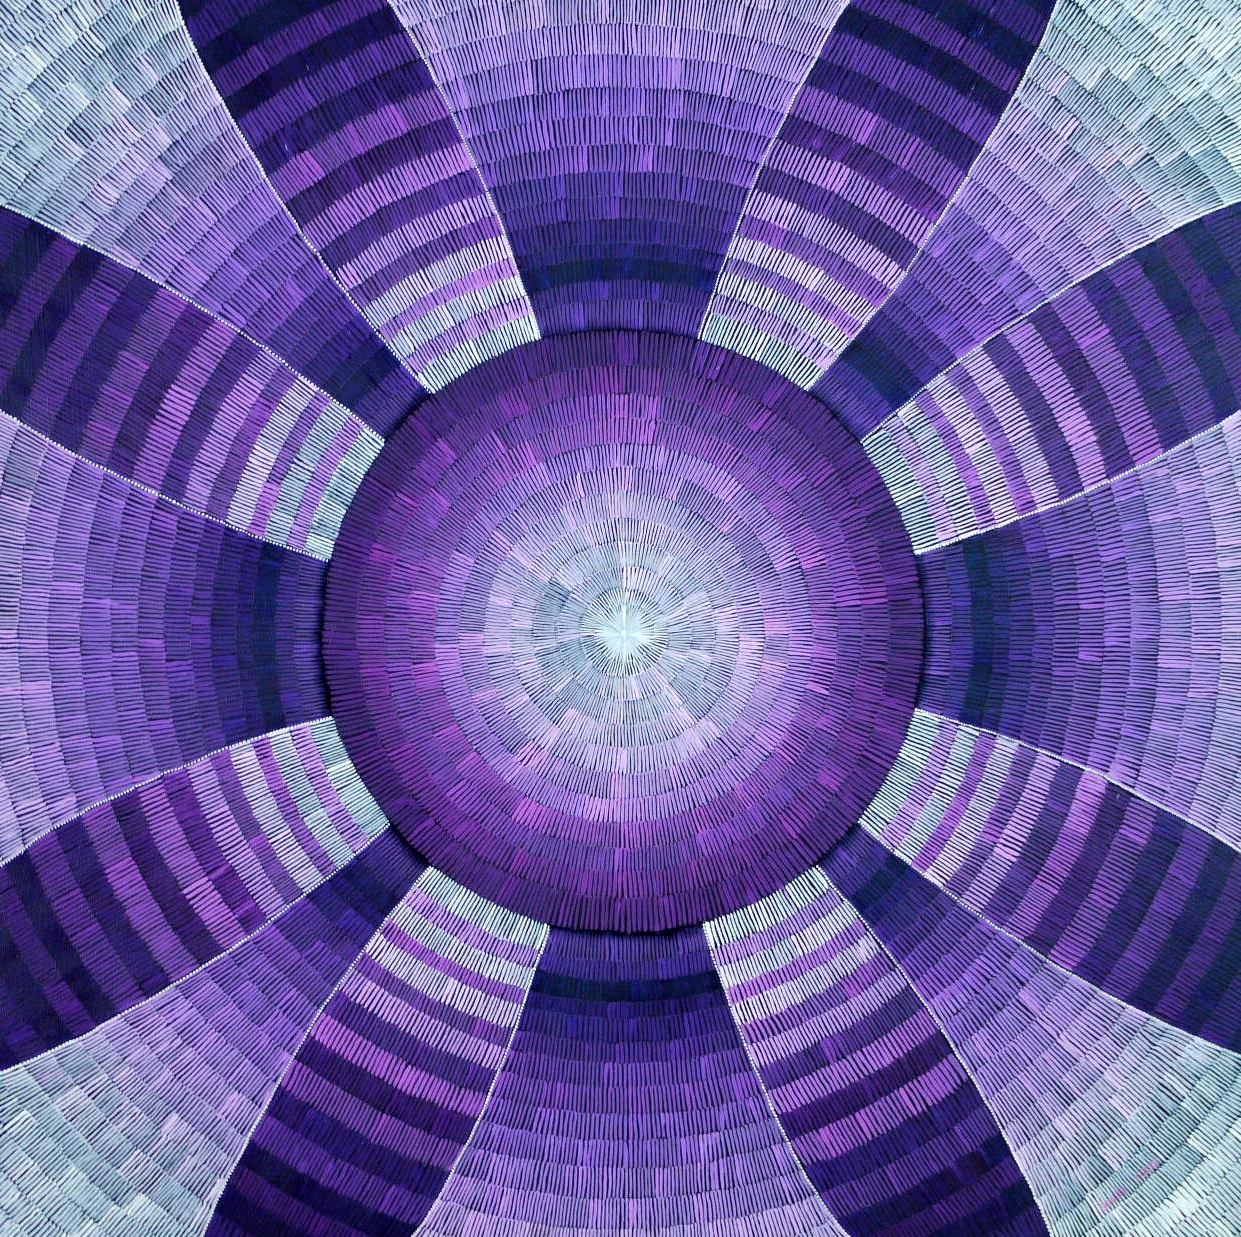 #471 - Chakra Mandala (Fibrous Series) oil on canvas 20x20, 7/18 (2-3)